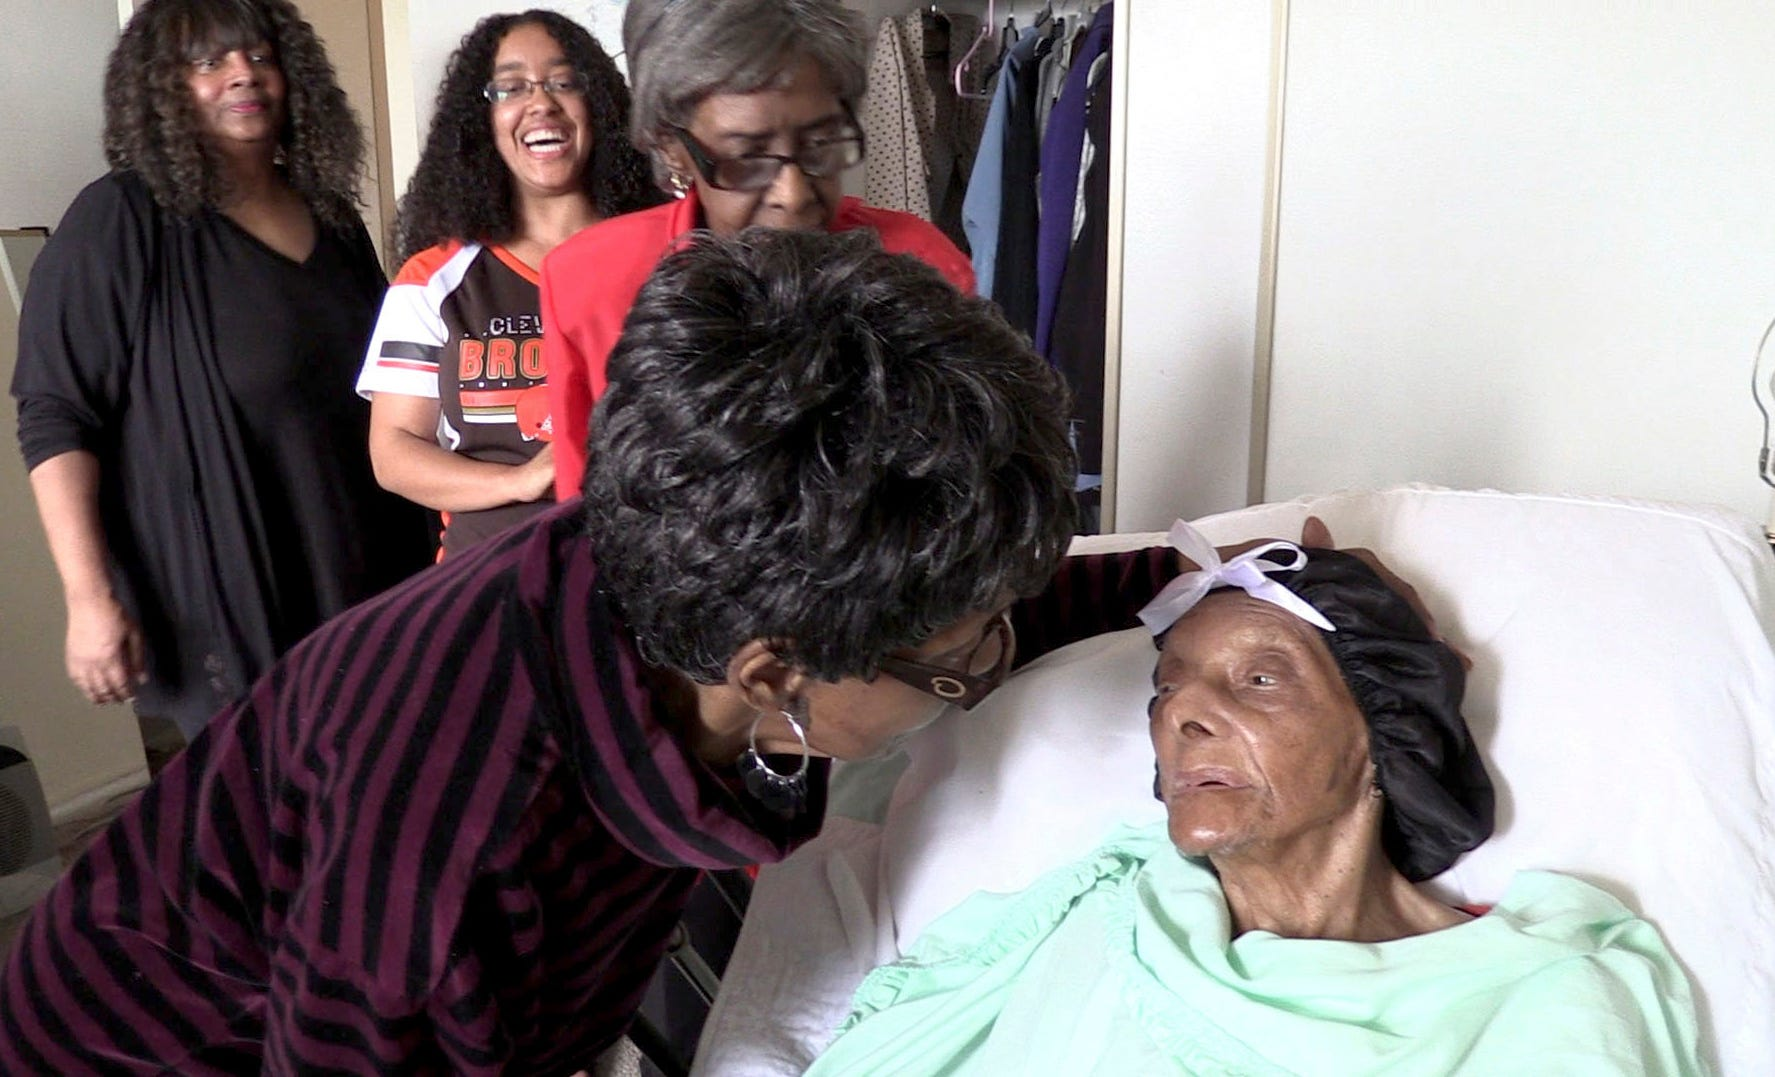 Lessie Brown, the oldest living person in the U.S., dies at 114